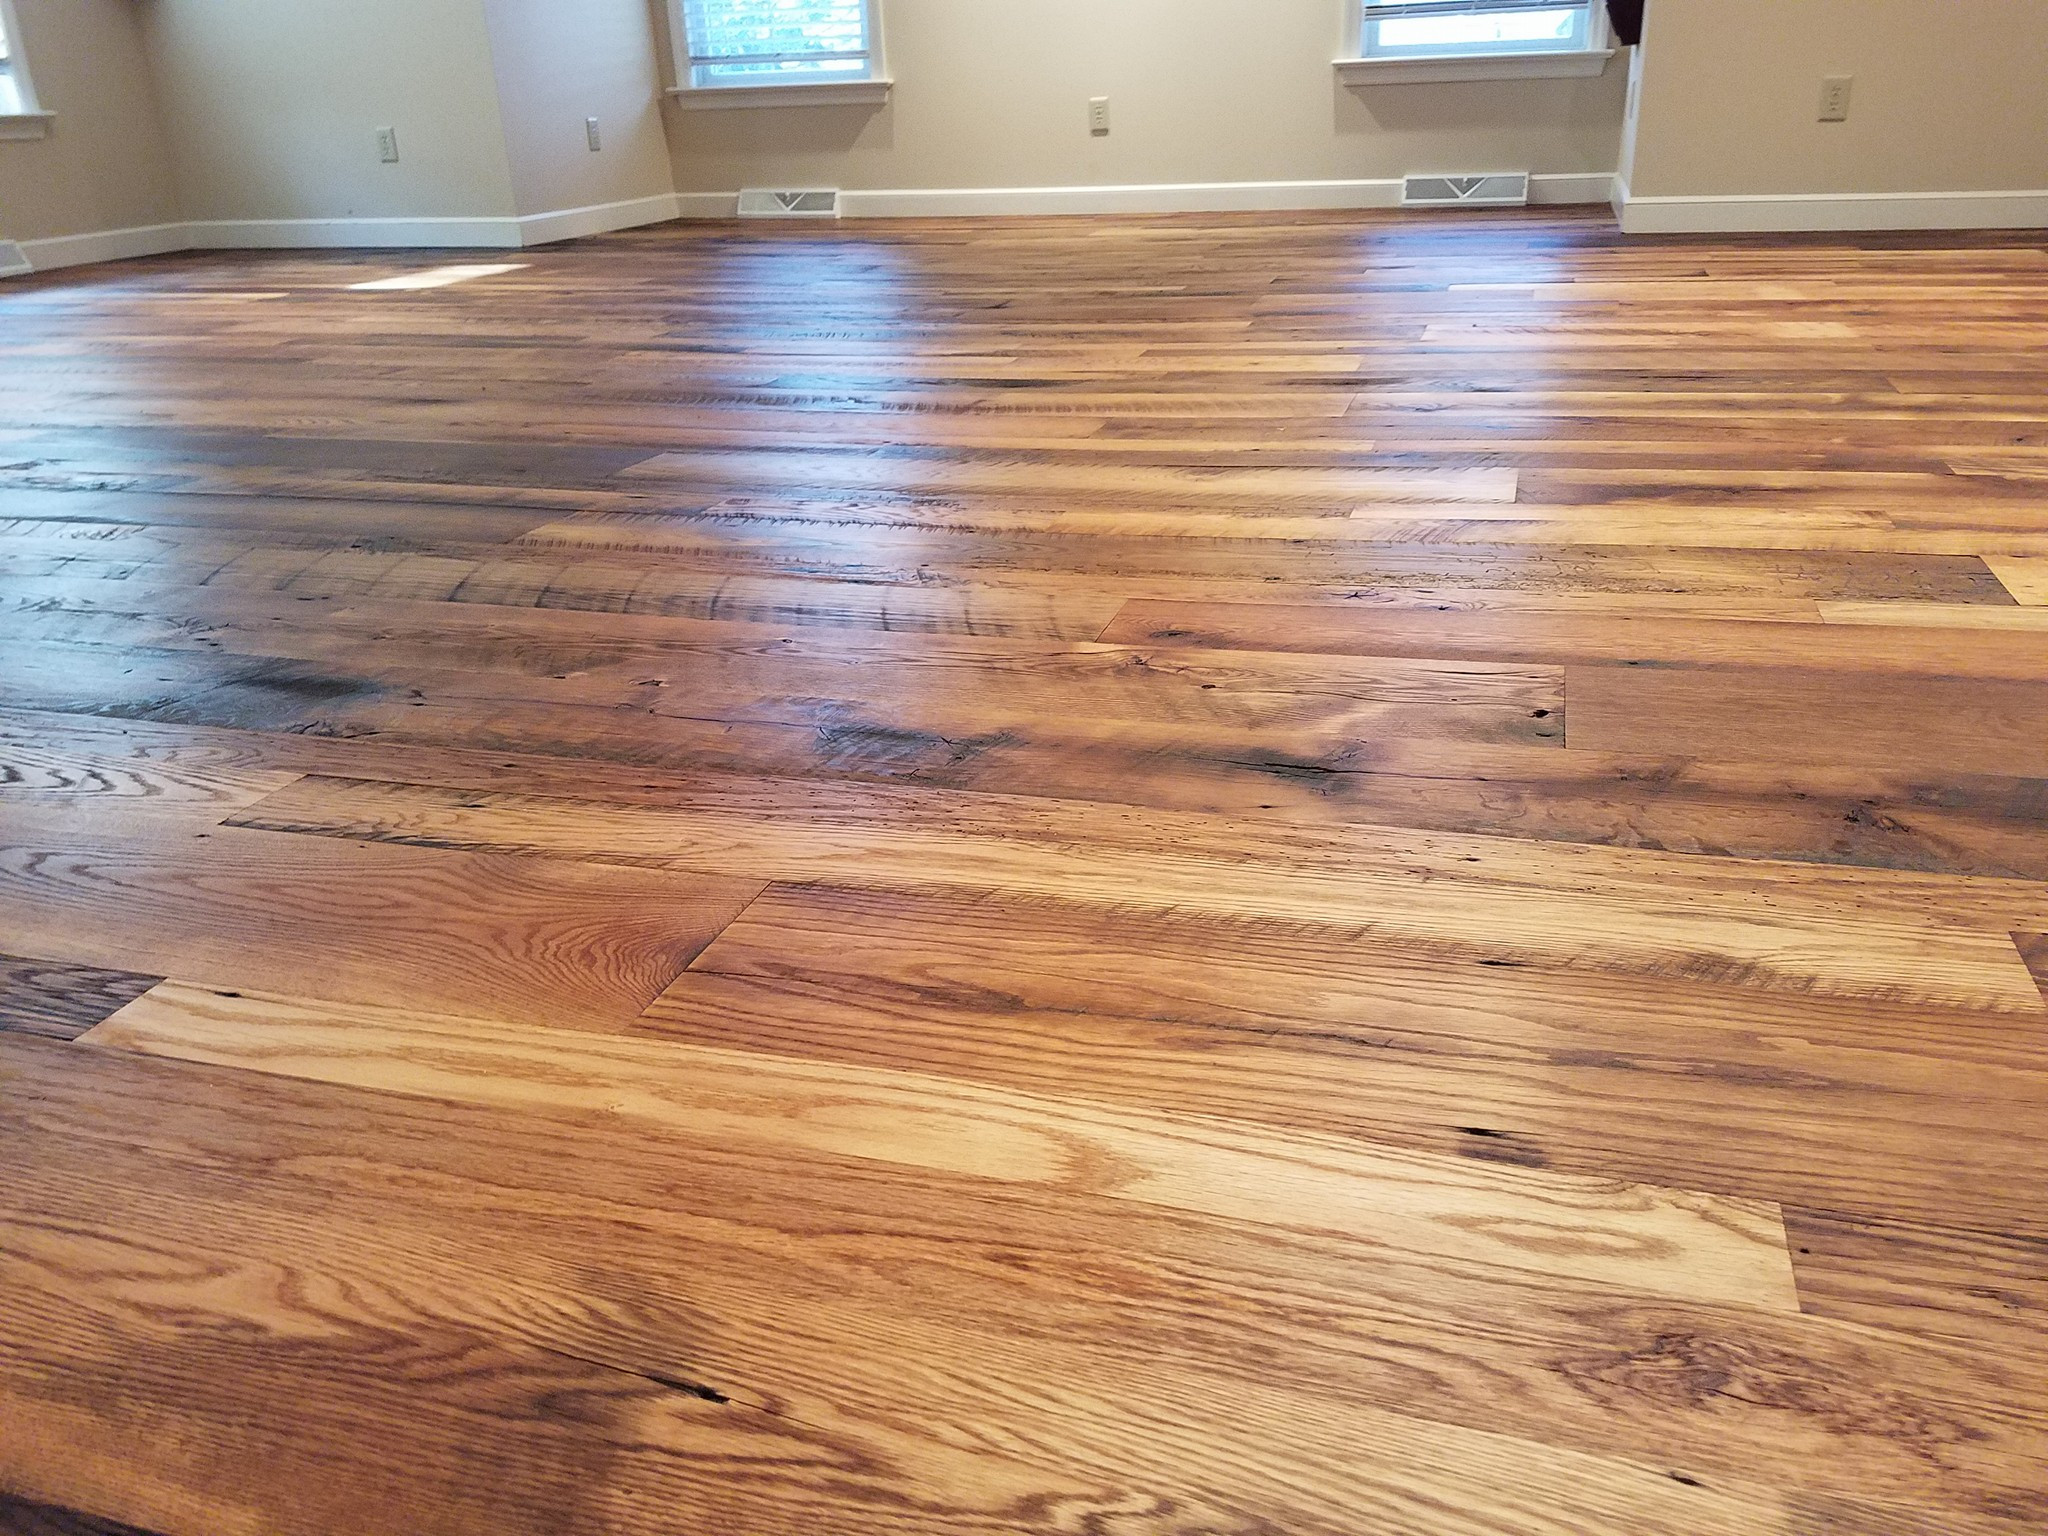 how much does staining hardwood floors cost of vintage wood flooring with regard to 15540630 1468260353201806 4284335561504308085 o